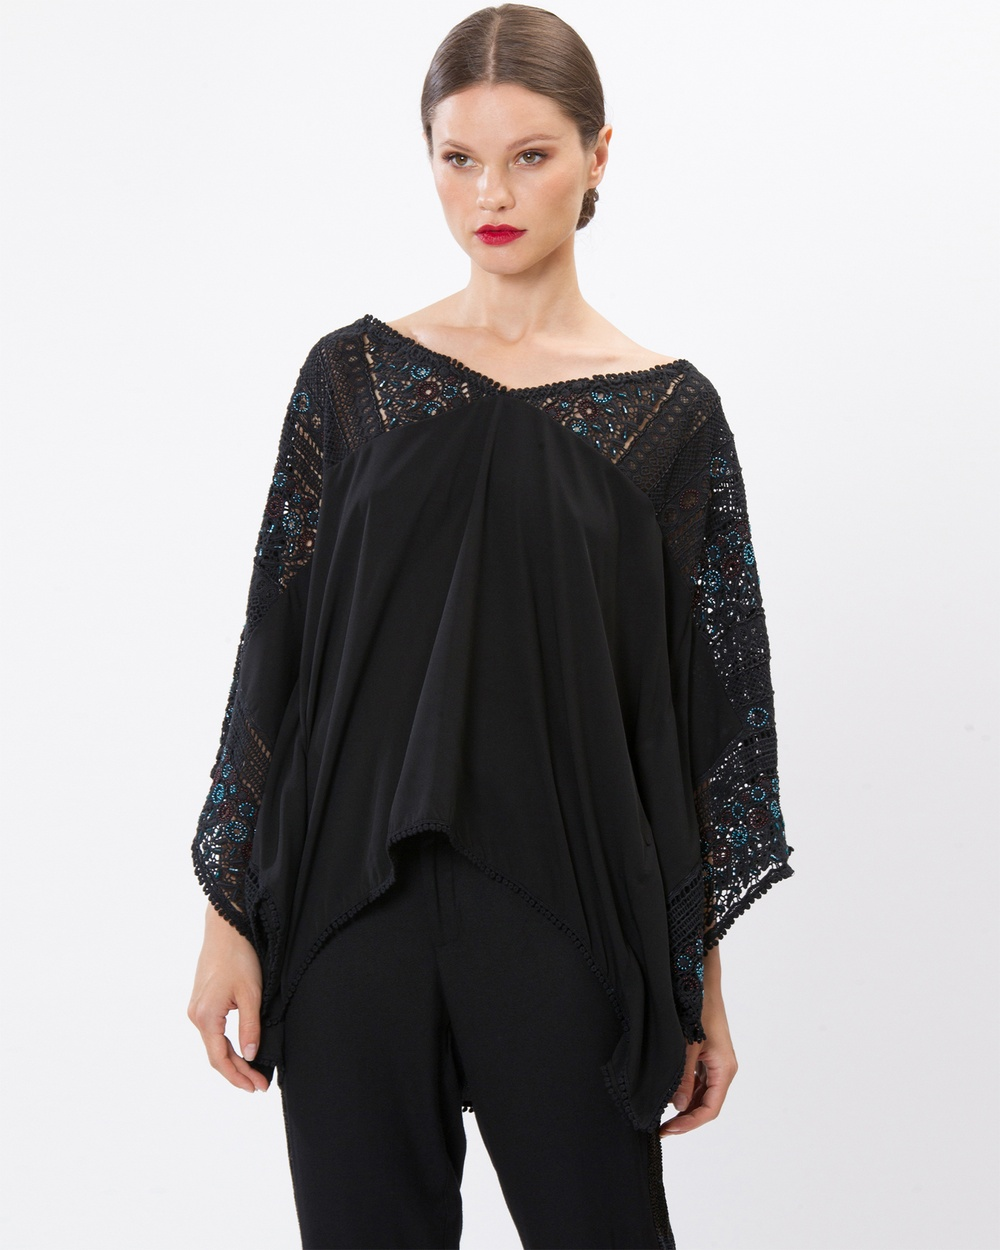 SIYONA Aliya Lace Embroidered Top Tops Black Aliya Lace Embroidered Top